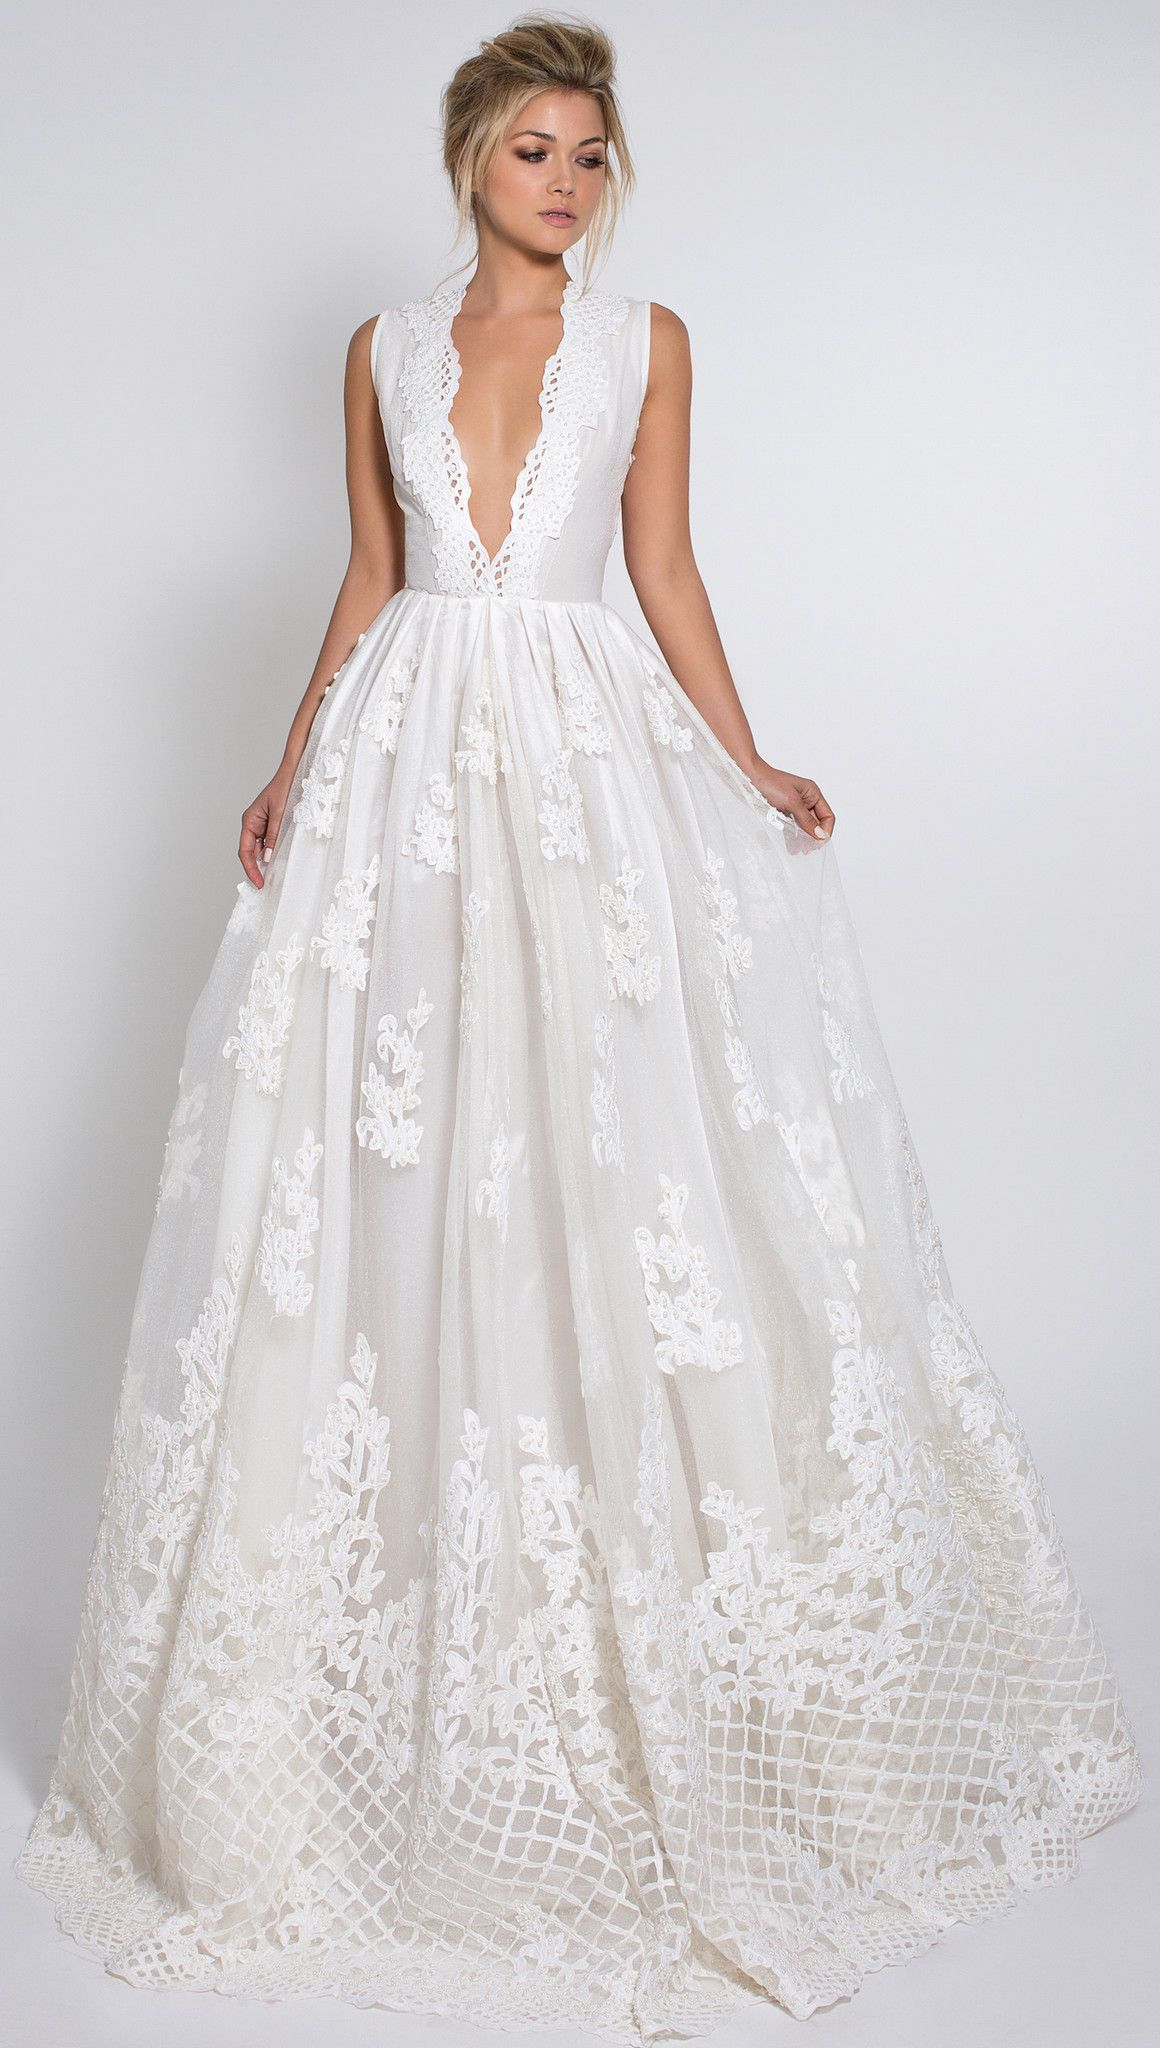 a3b81263d9 Love the deep v-neck and lace detail in this dress.